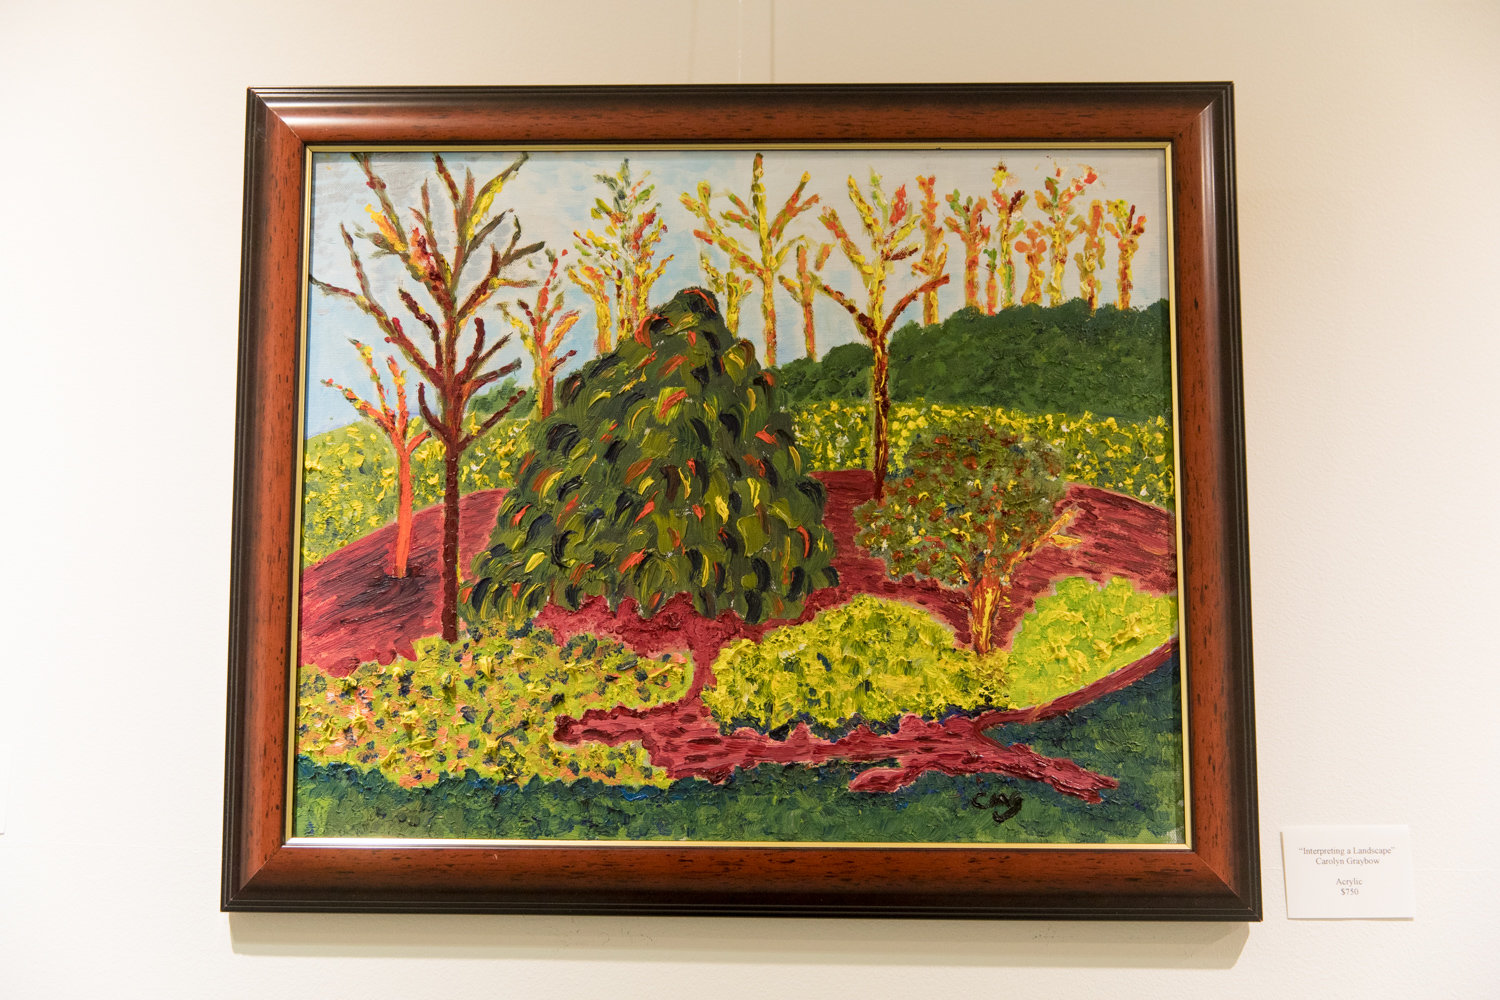 Carolyn Graybow's painting 'Interpreting a Landscape' is included in the exhibition 'Tree Time,' on display at The Riverdale Y through Nov. 3.